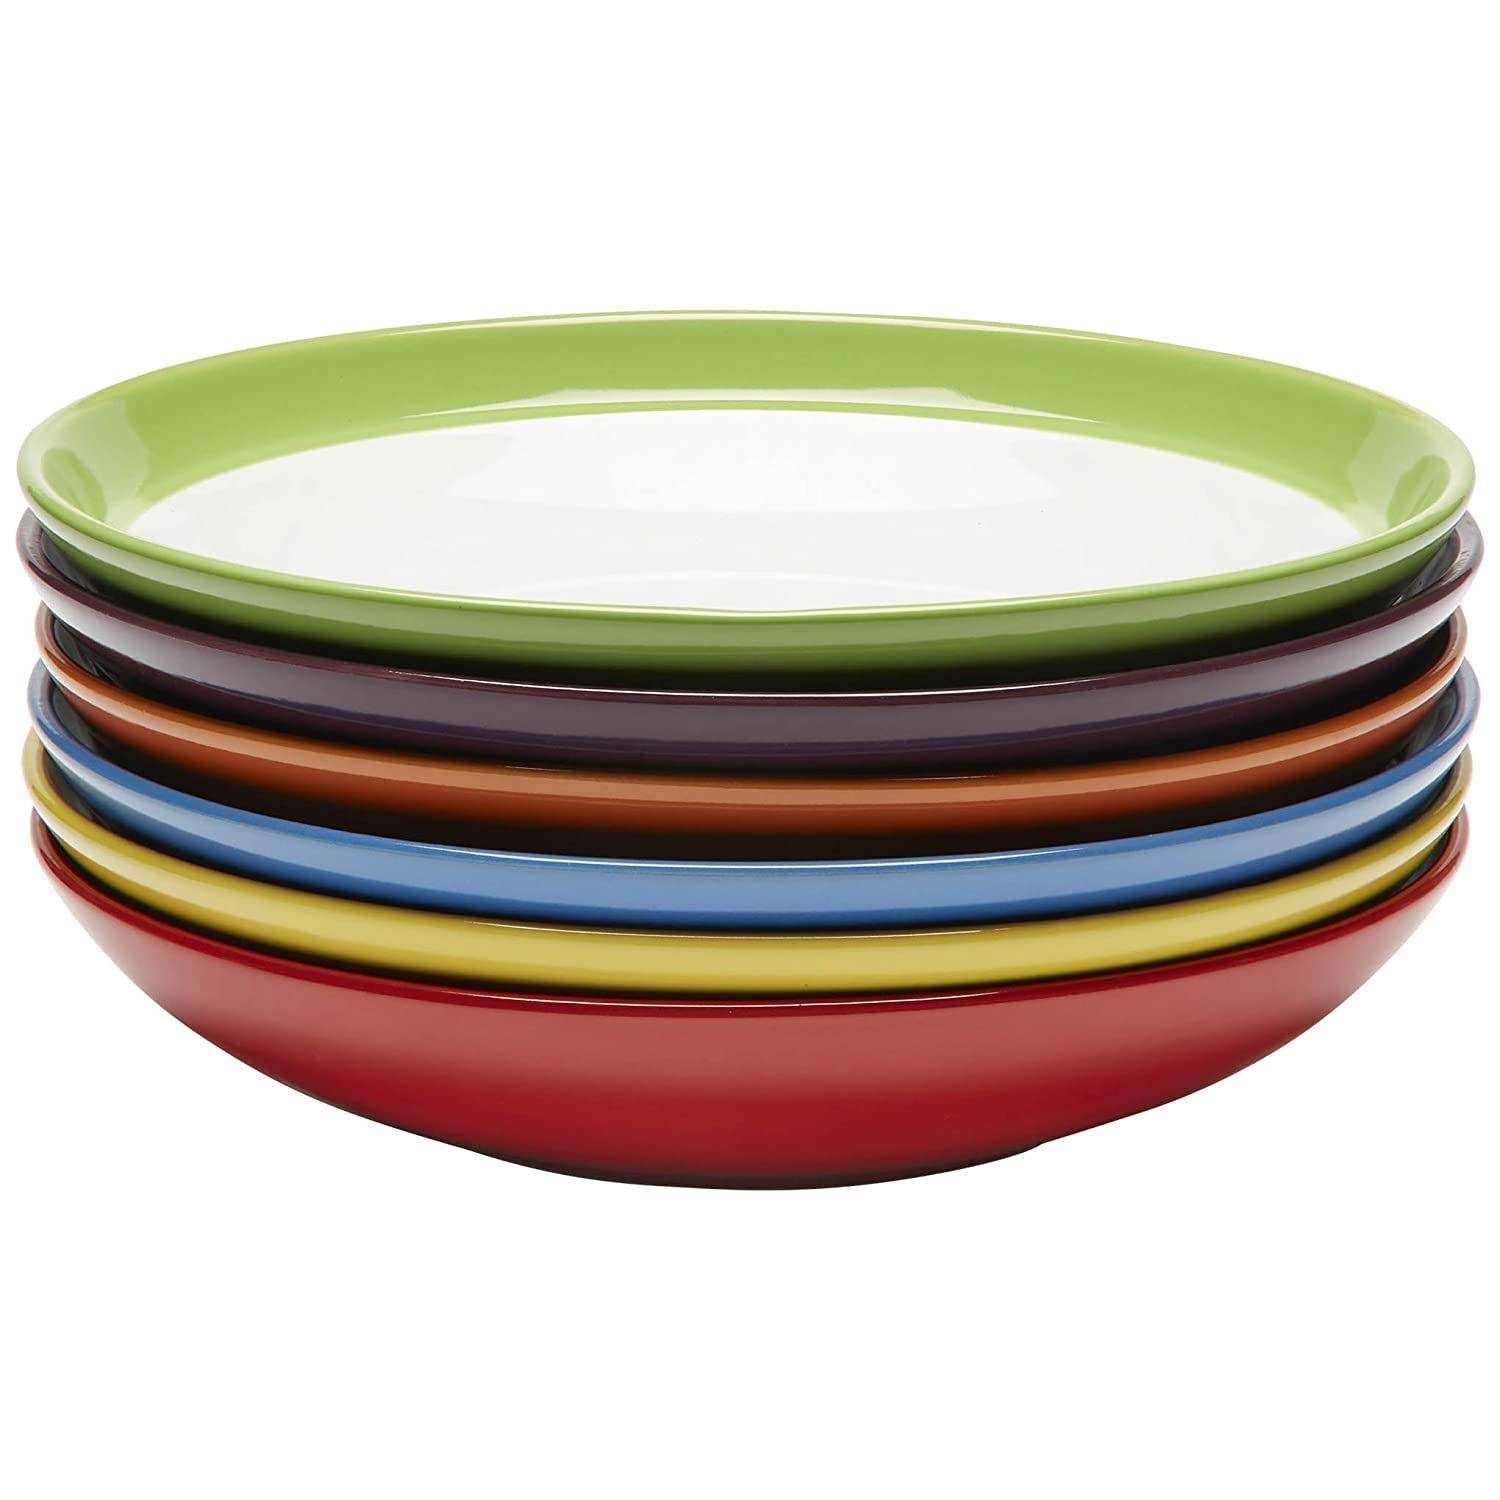 Premium Ceramic Set of 6, Colorful Meal Stoneware (Pasta and Salad Bowls) Amethya 06-00038-01